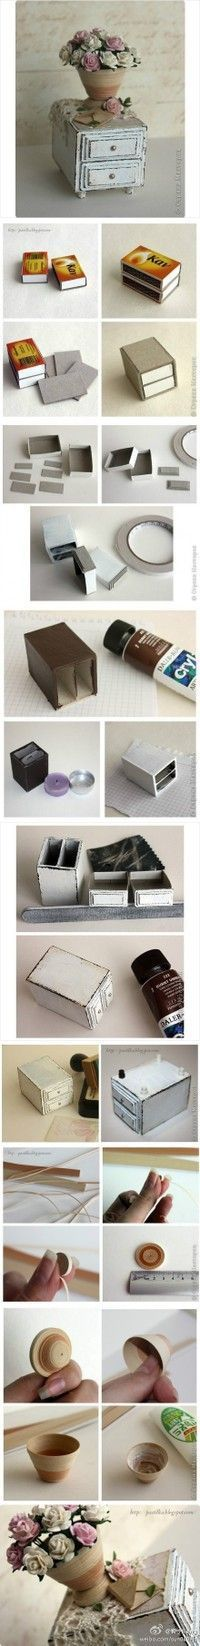 """How could people be so creative!!!??? [ """"Miniature two drawer side table from match boxes!"""", """"Doll house DIY night stand out of matchboxes!"""", """"Clever (easy diy )way to make a little table with drawer. Use more match boxes and create a larger size table. Great for dollhouse."""", """"Miniature Matchbox Drawer and Vase - I need to do this. I LOVE miniatures."""", """"How to make a mini nightstand from matchboxes. No words just pictures"""" ] #"""